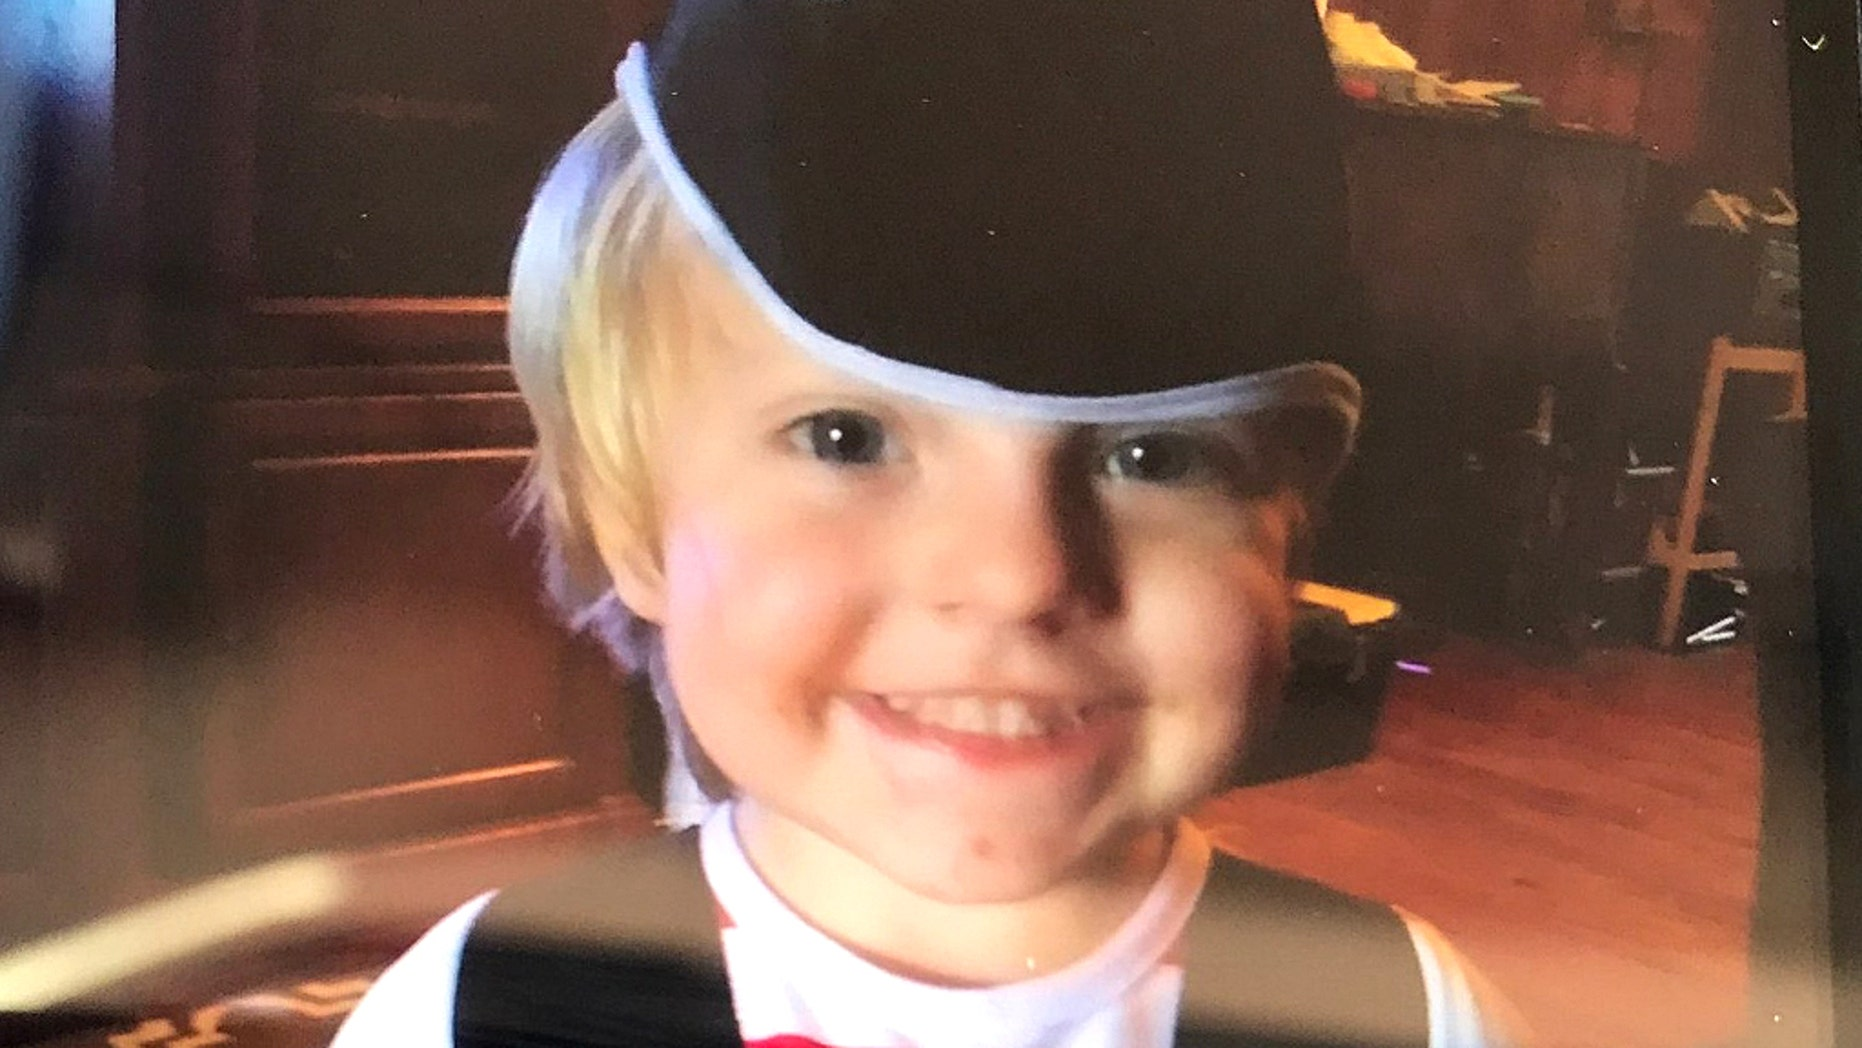 Little Daniel Theriot, 3, was found murdered Monday, a day after his mother reported him missing.